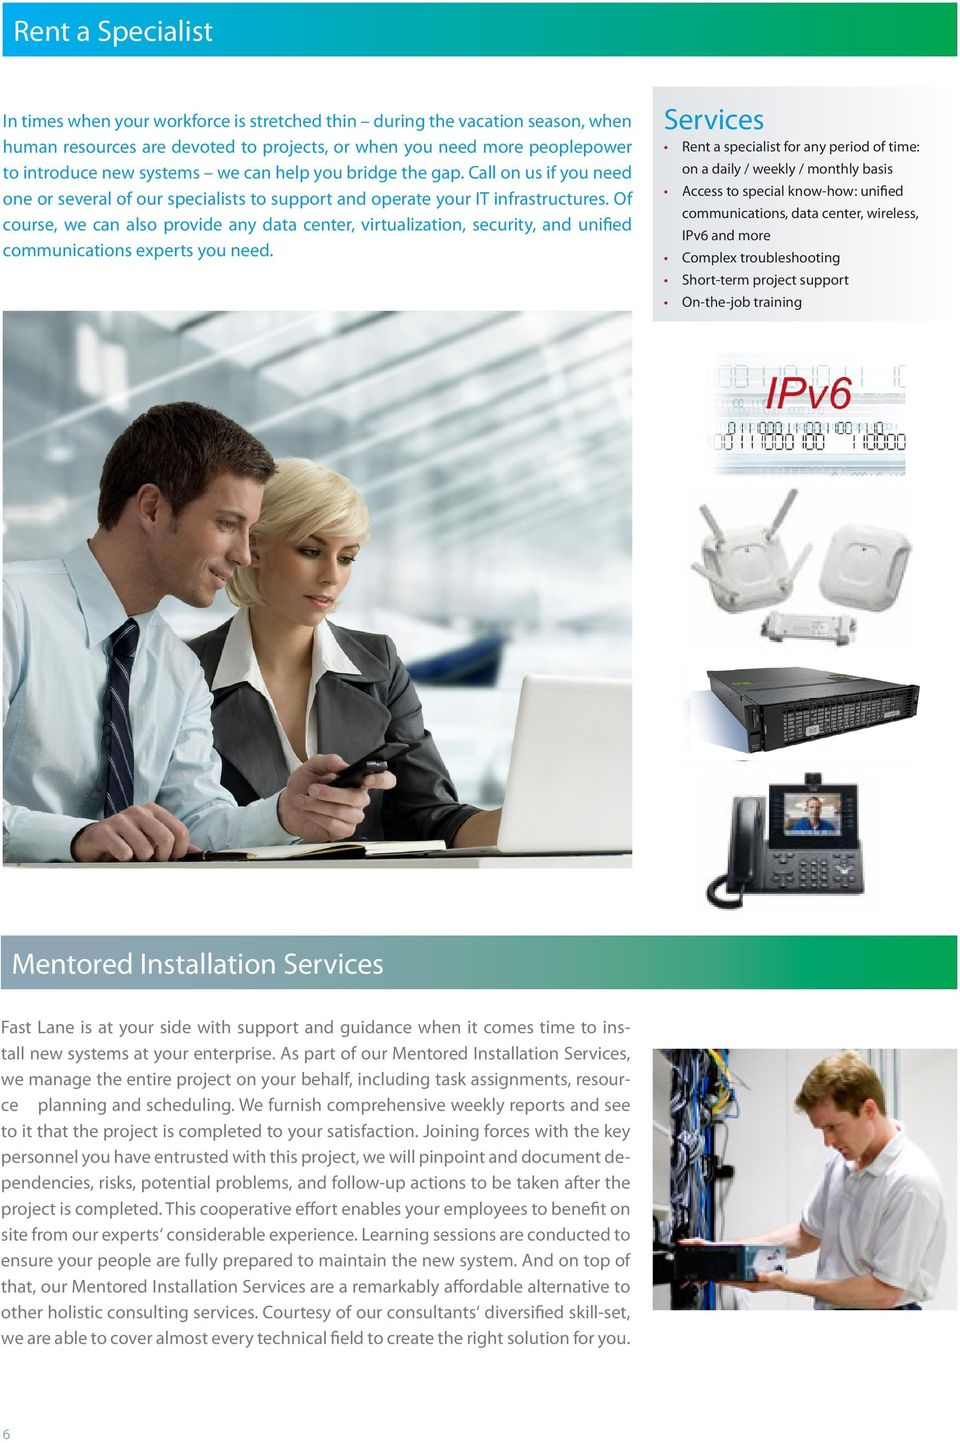 Of course, we can also provide any data center, virtualization, security, and unified communications experts you need.